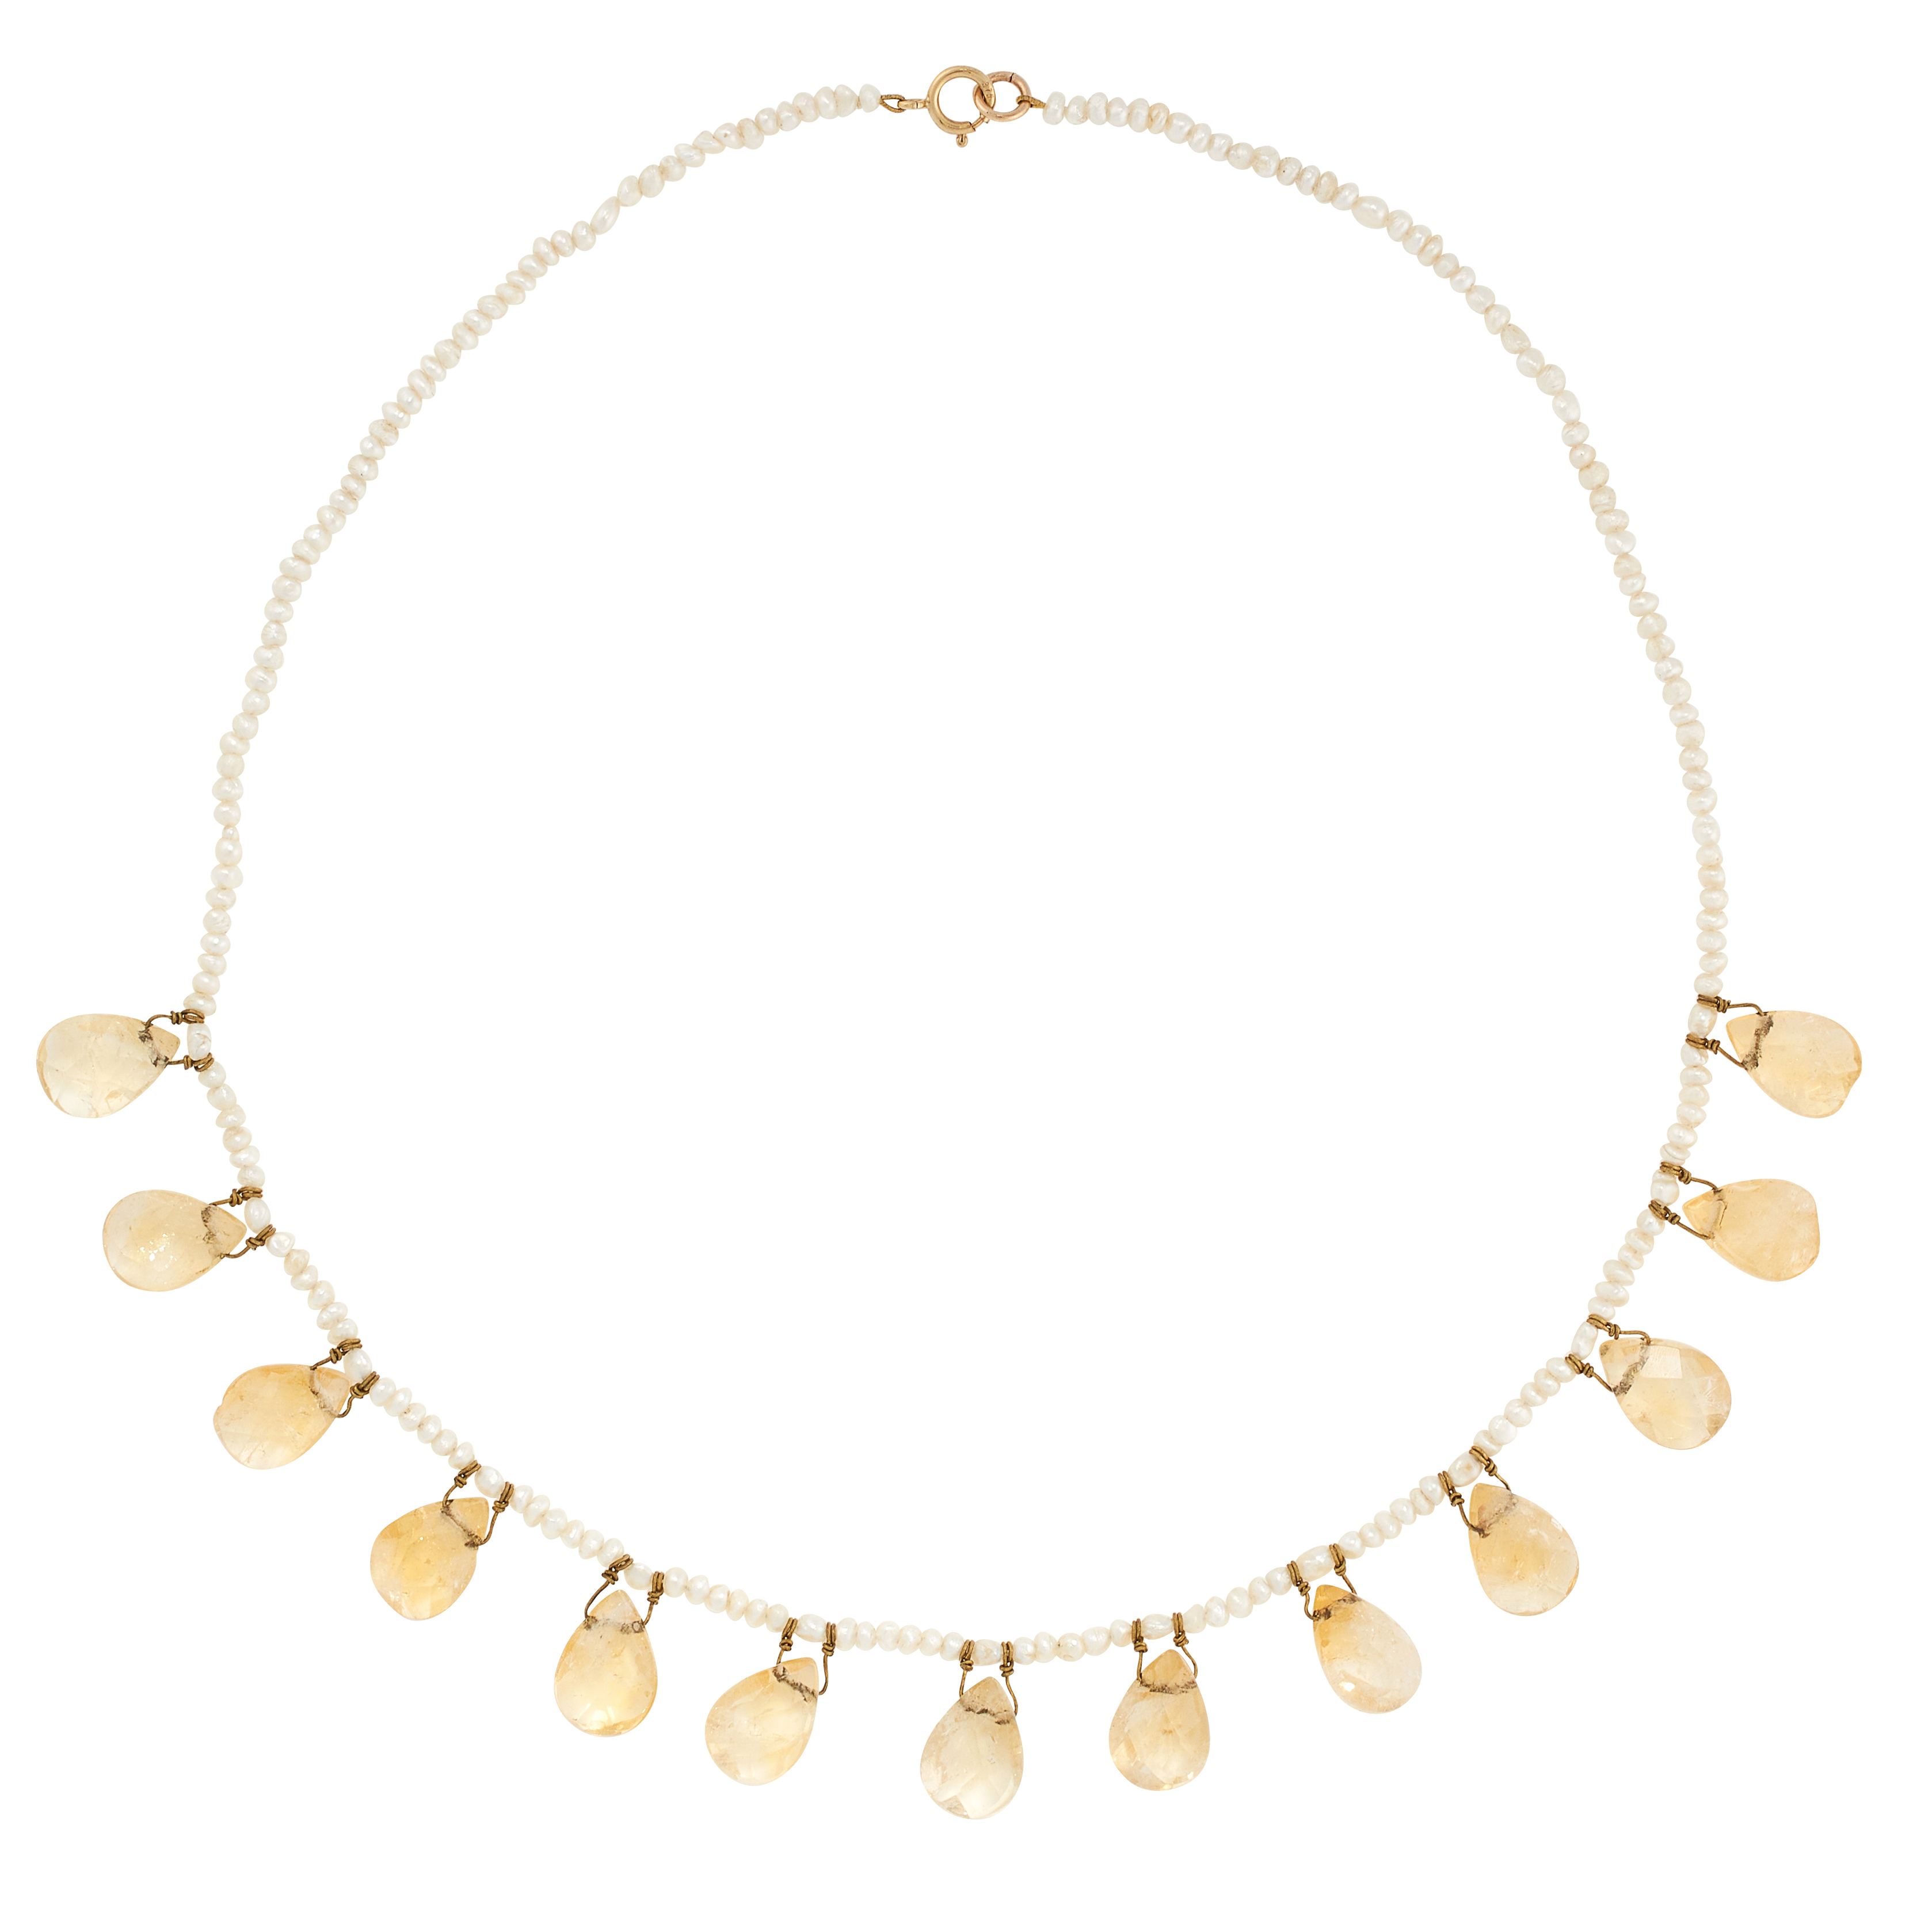 AN ANTIQUE CITRINE AND PEARL NECKLACE, 19TH CENTURY in yellow gold, comprising a single row of